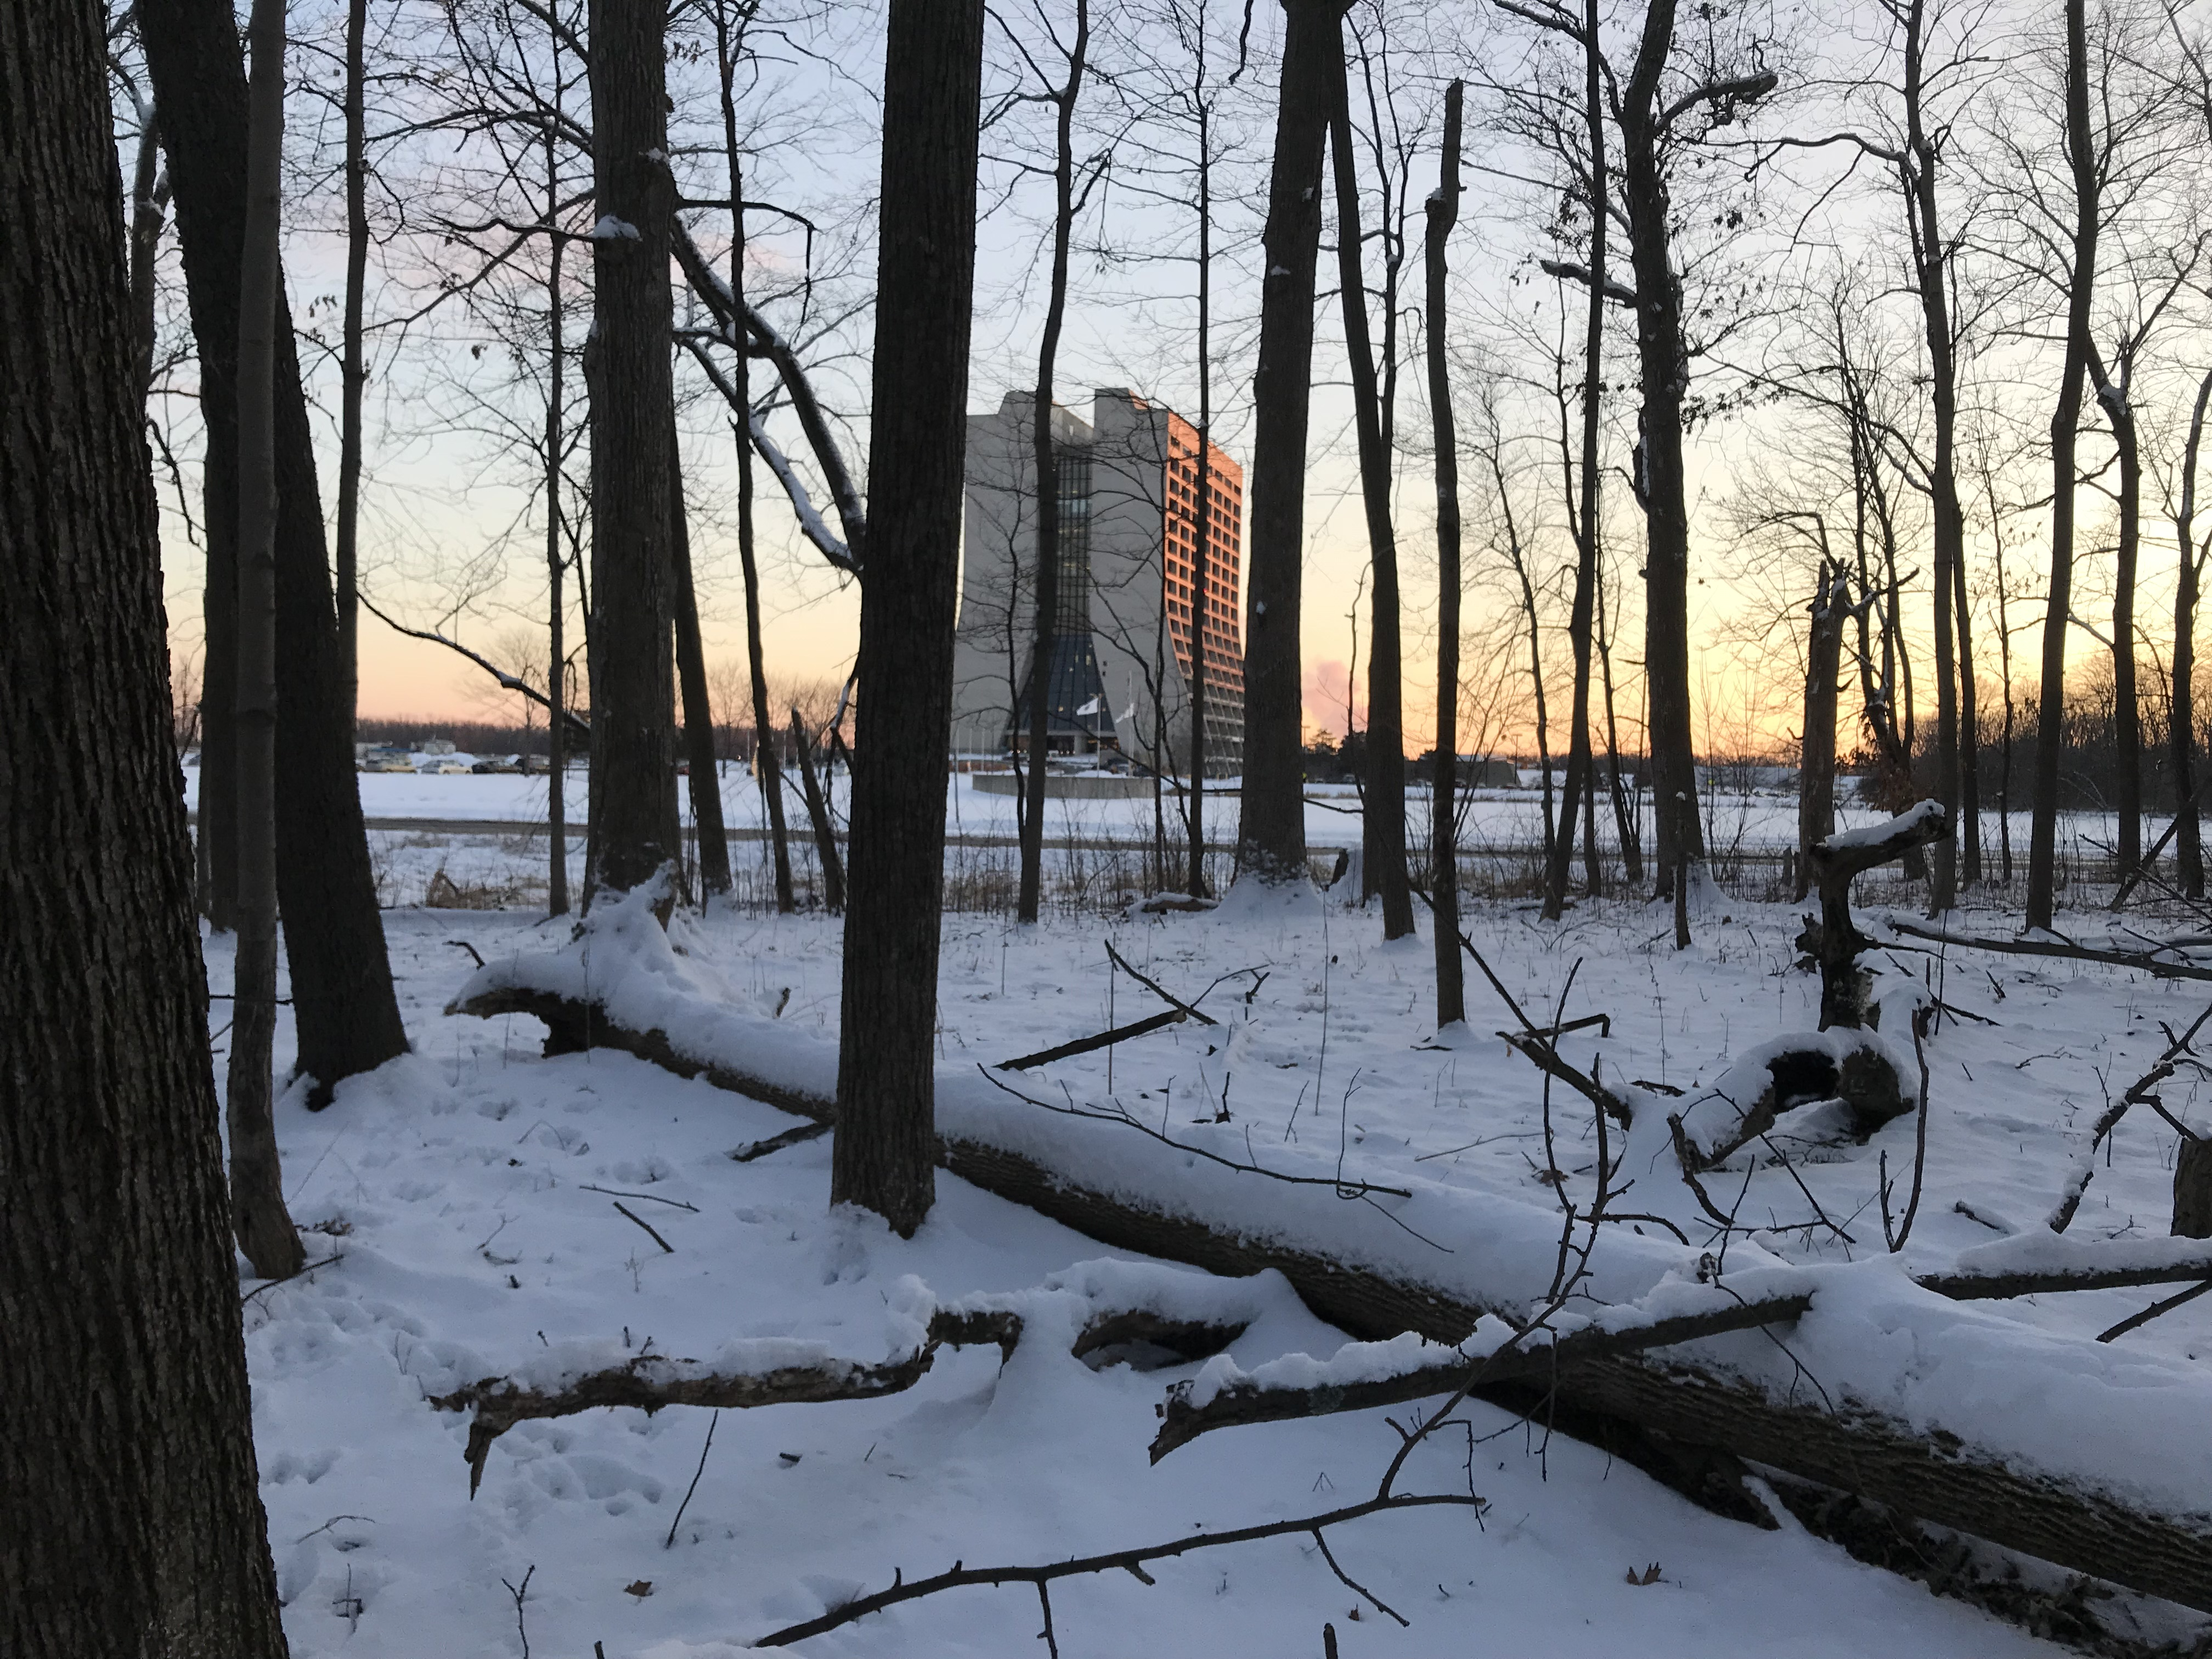 (2/2) Wilson Hall is seen in the evening light from the woods on Feb. 18. woods, tree, nature, landscape, Wilson Hall, building, winter, snow, skyPhoto: Anne Heavey